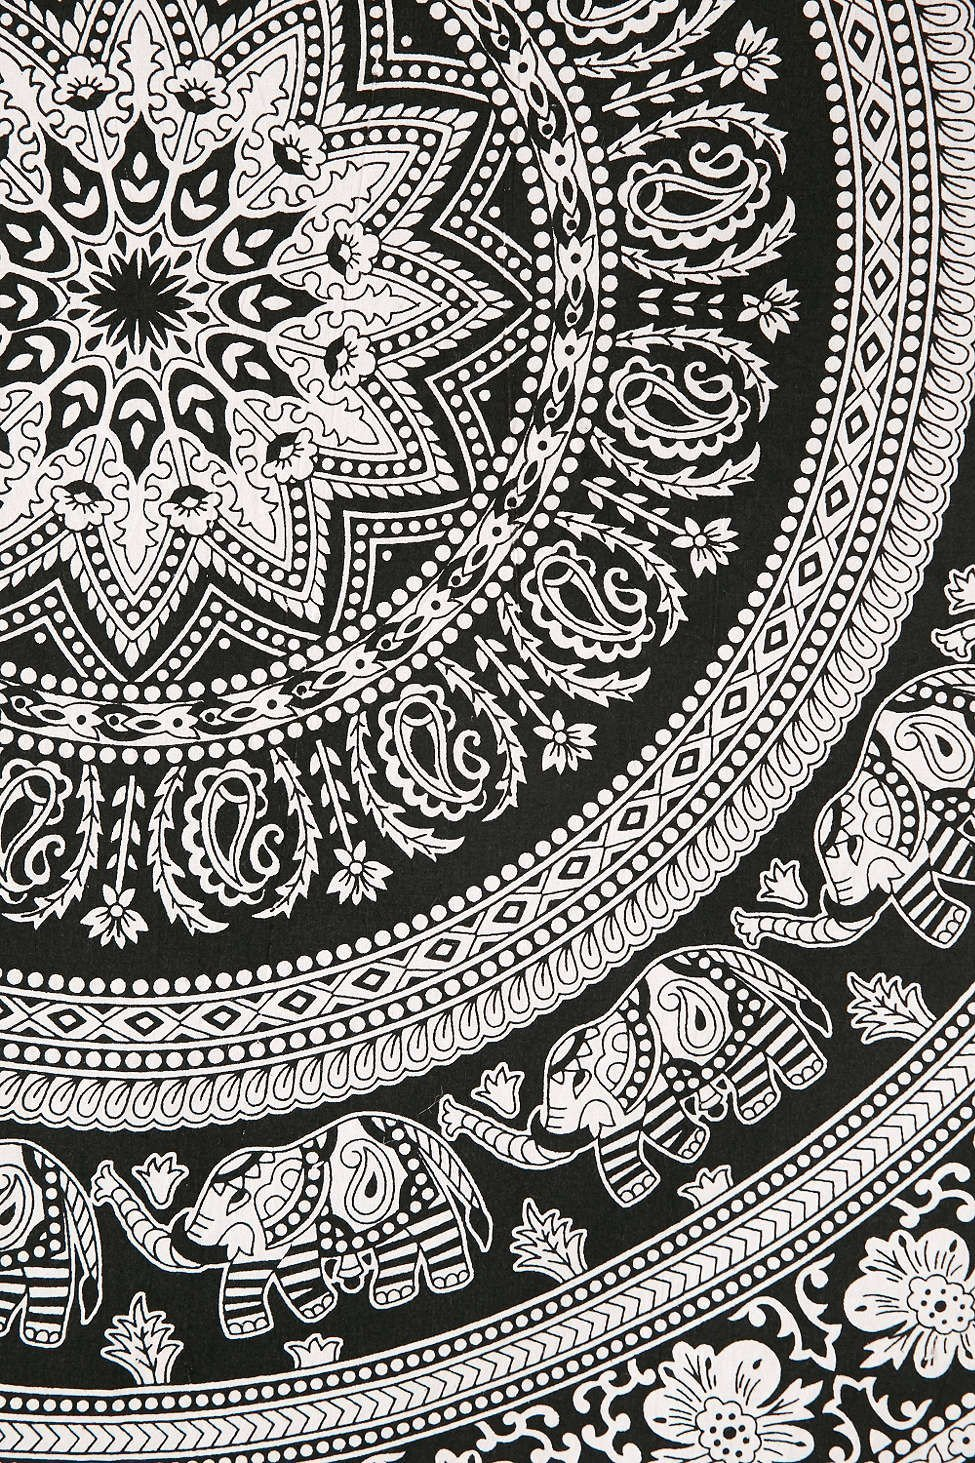 Magical Thinking Floral Elephant Tapestry Black And White